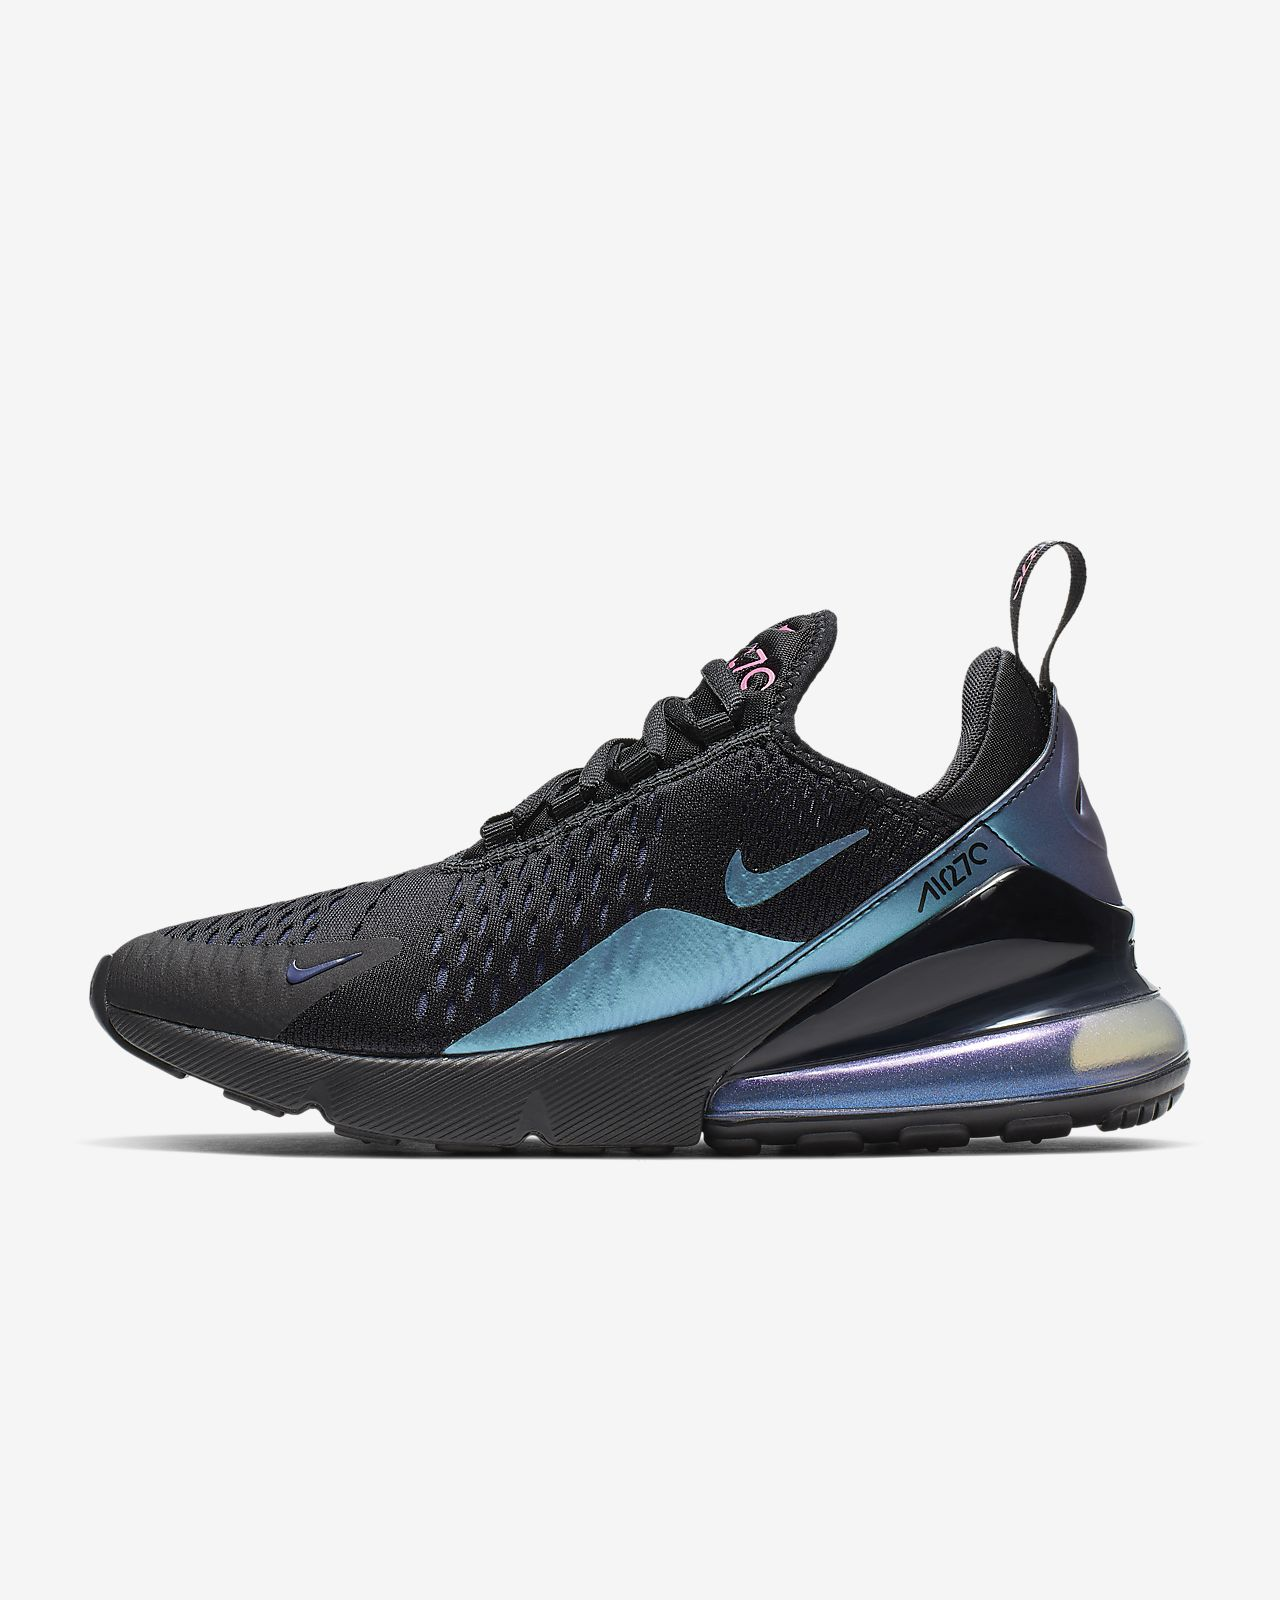 0c38f7c97bb19 Nike Air Max 270 Women s Shoe. Nike.com GB